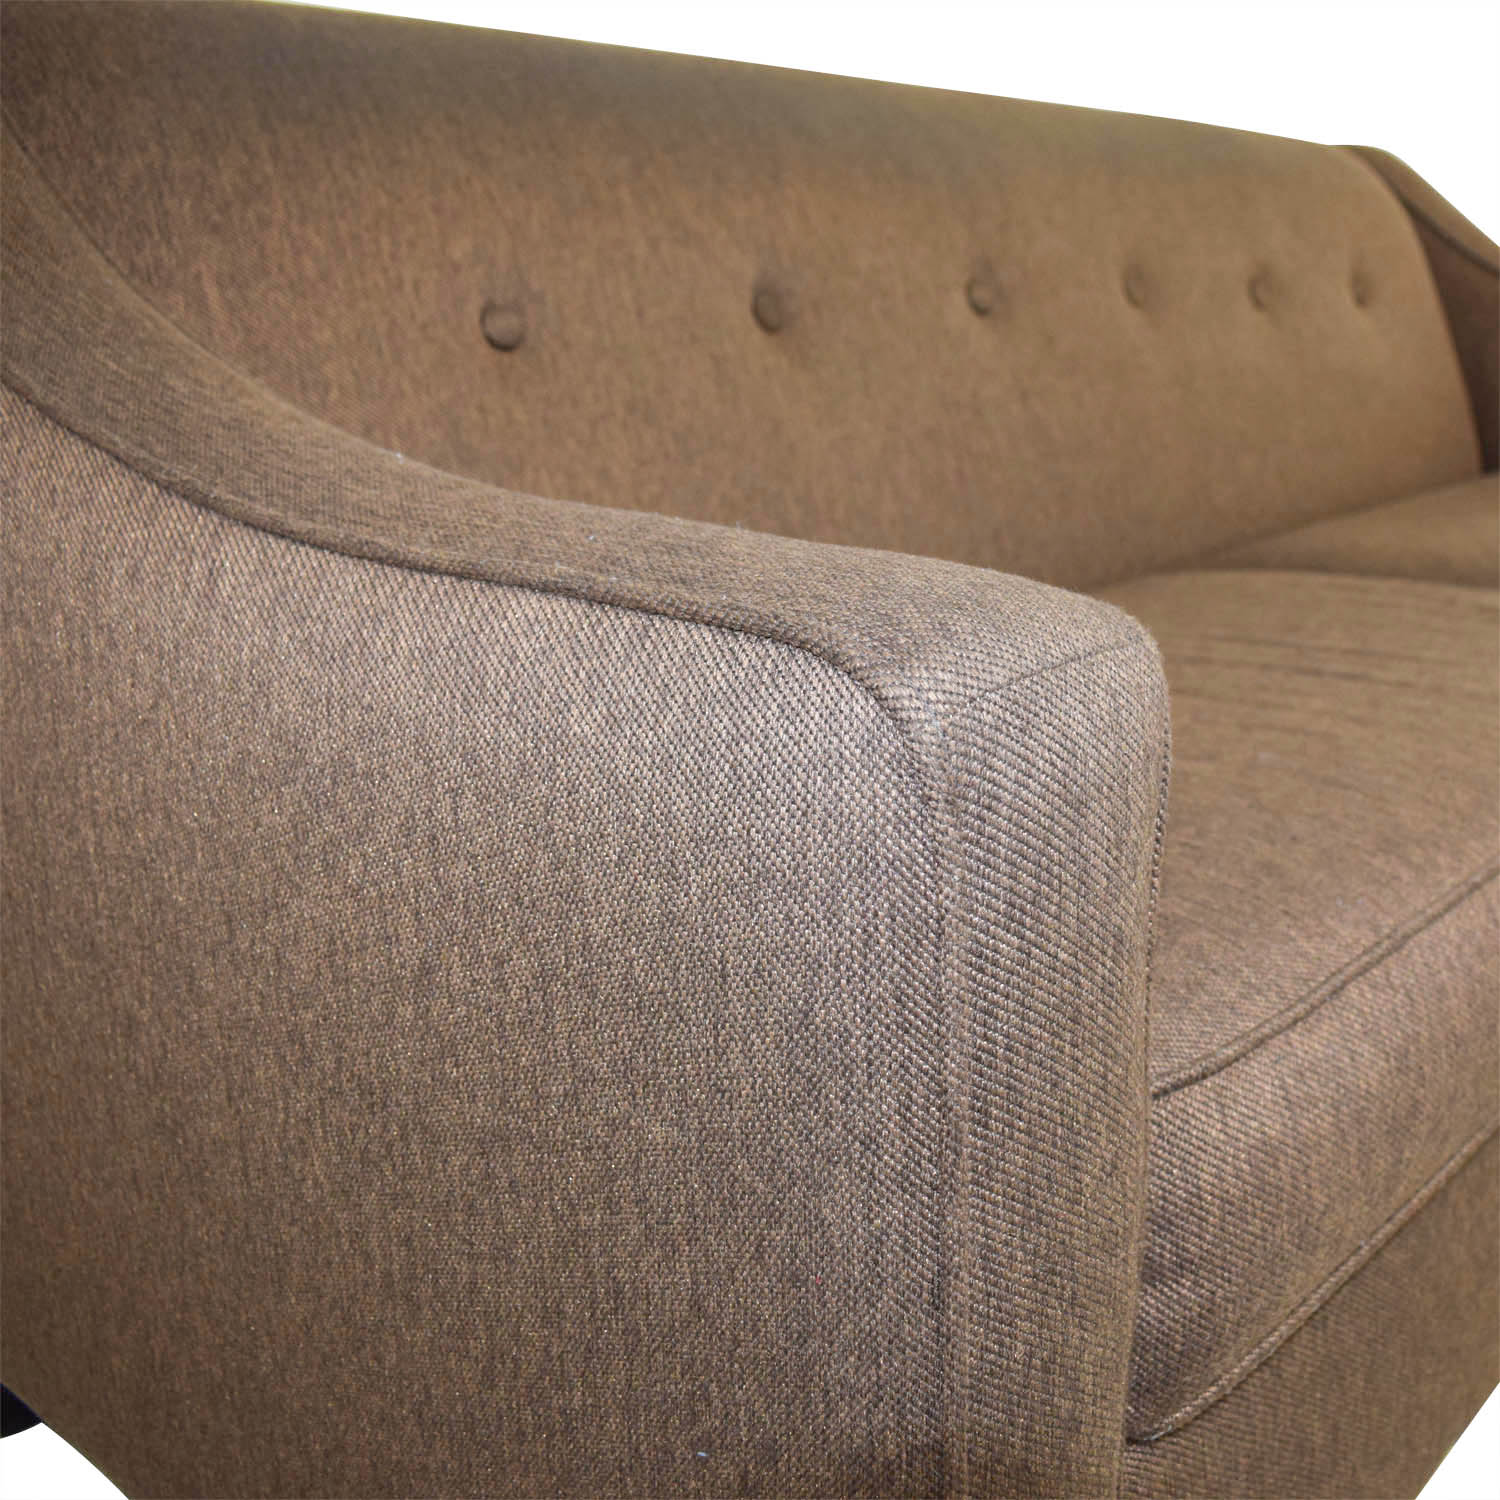 buy Craftmaster Furniture Craftmaster Furniture Brown Tweed Tufted Two Cushion Sofa online